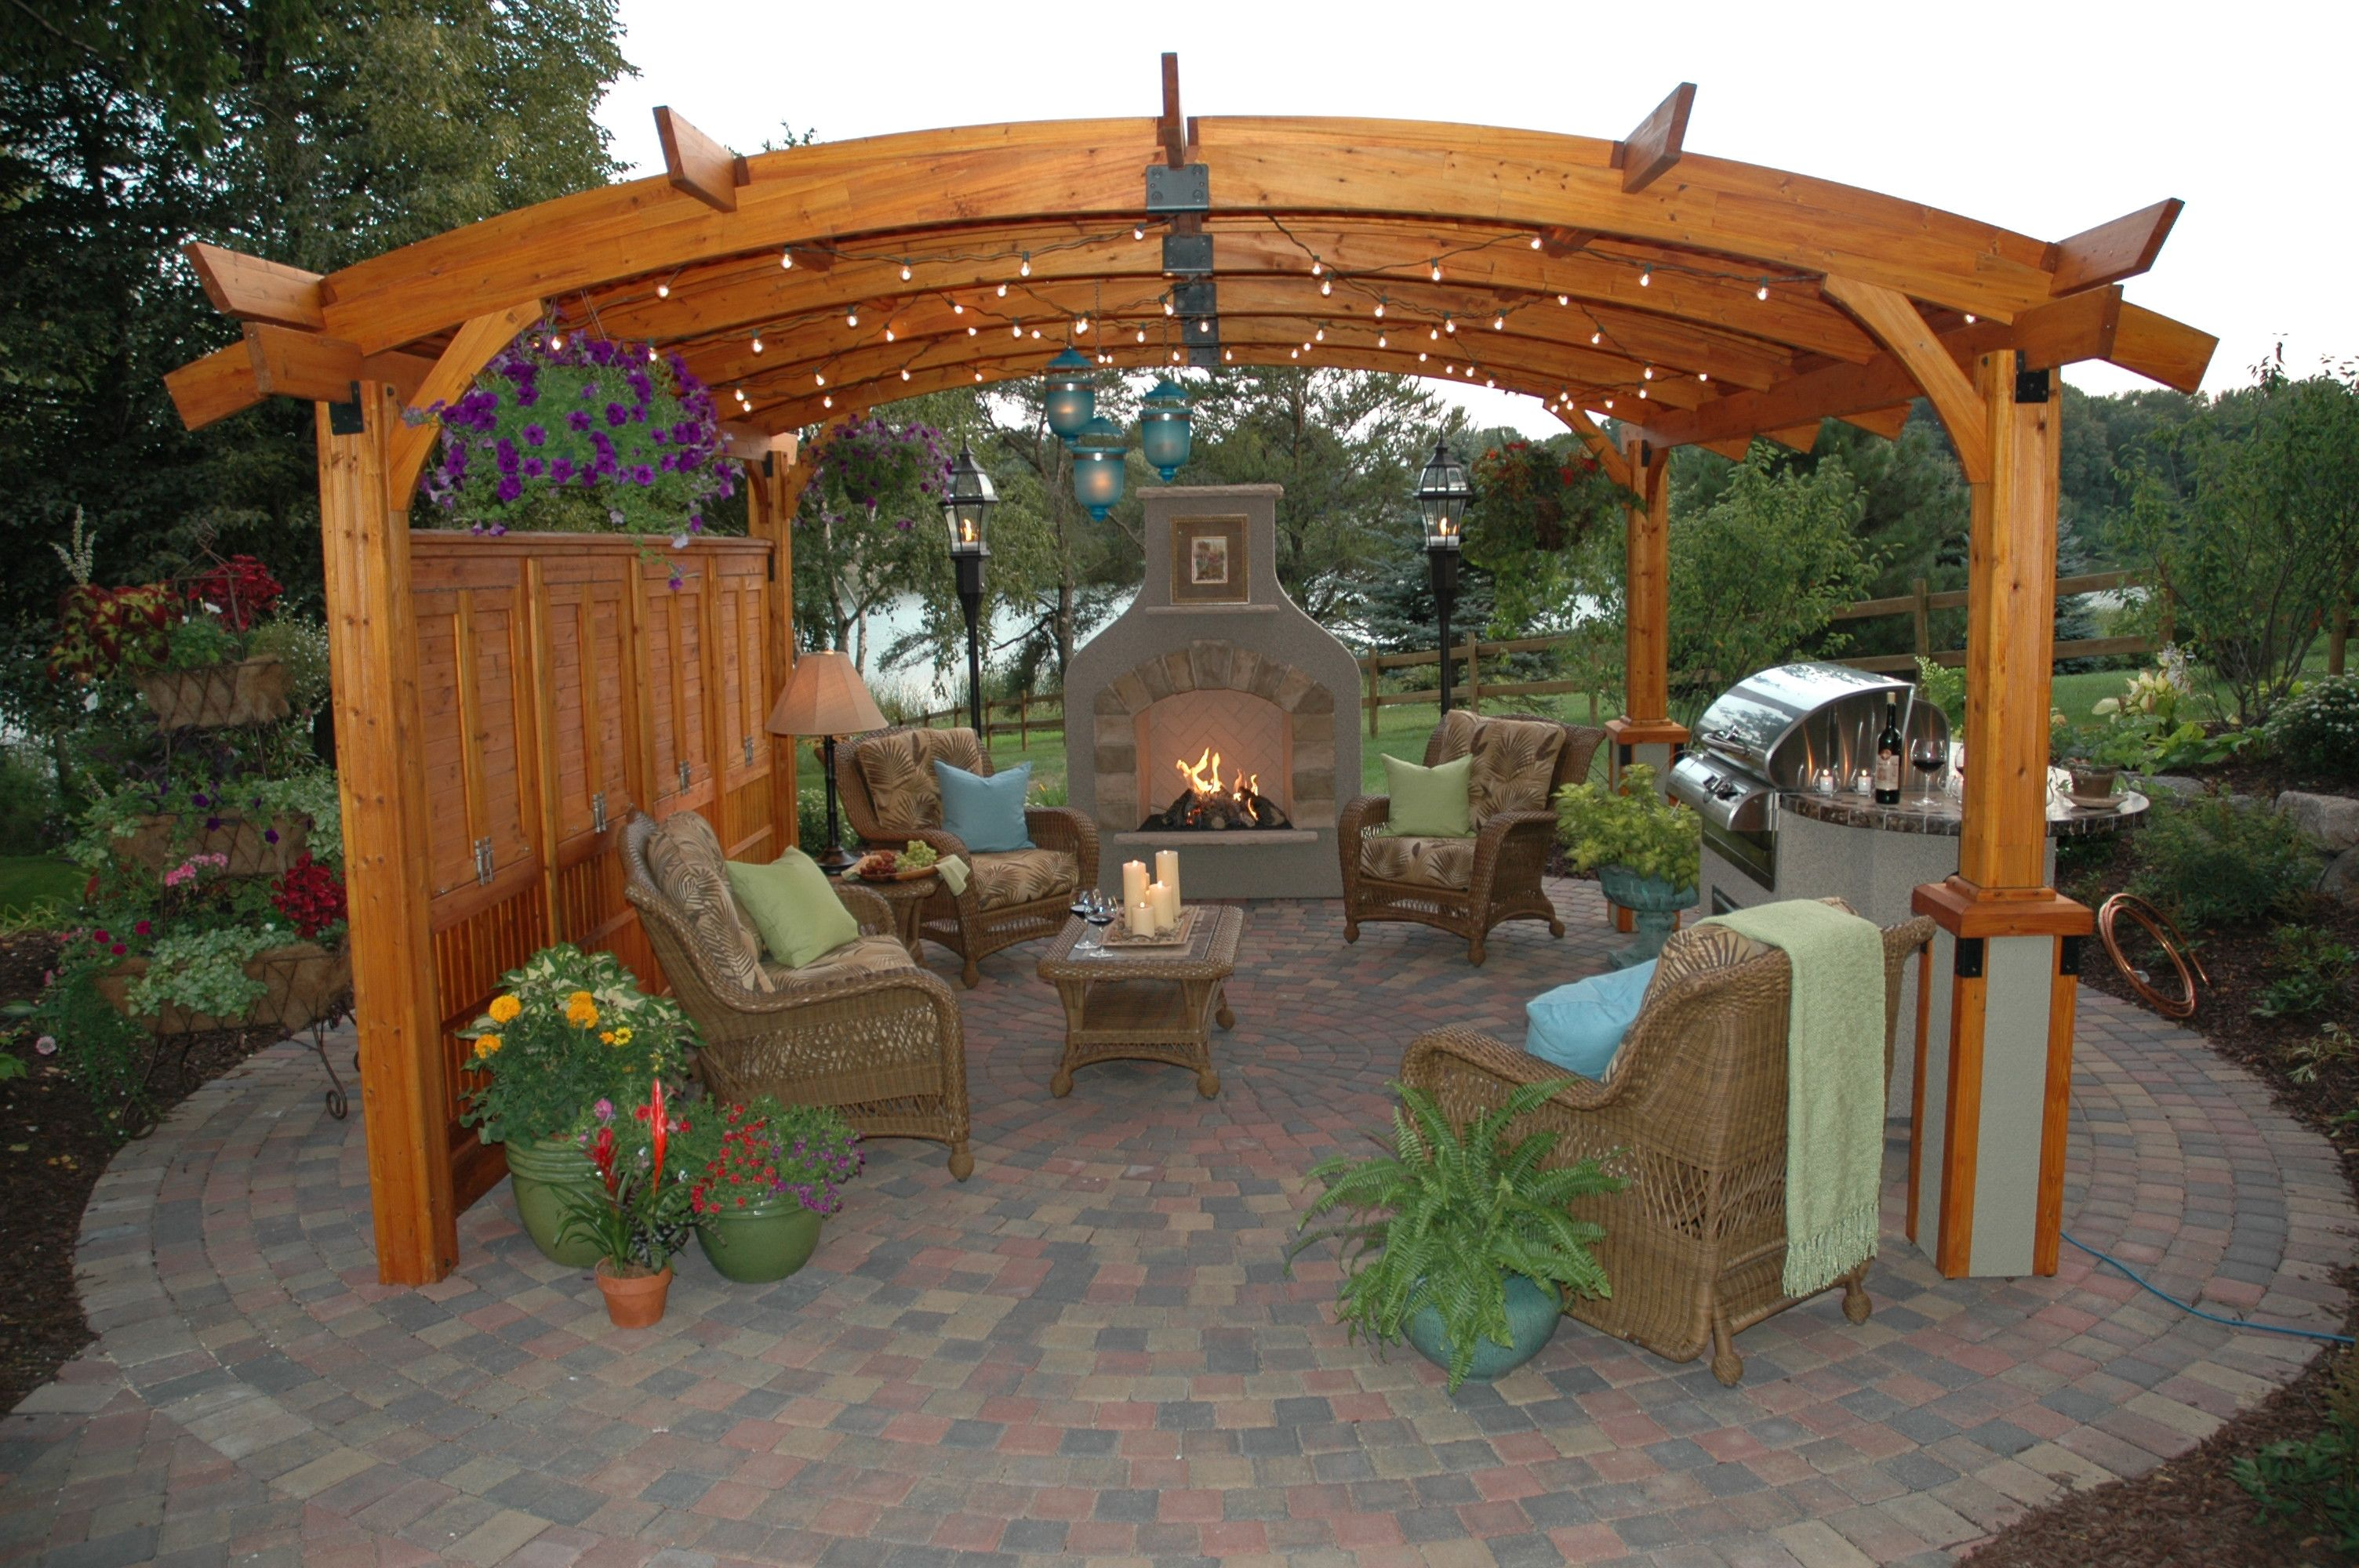 Outdoor Sitting Area With Fireplace Under Pergola Quite